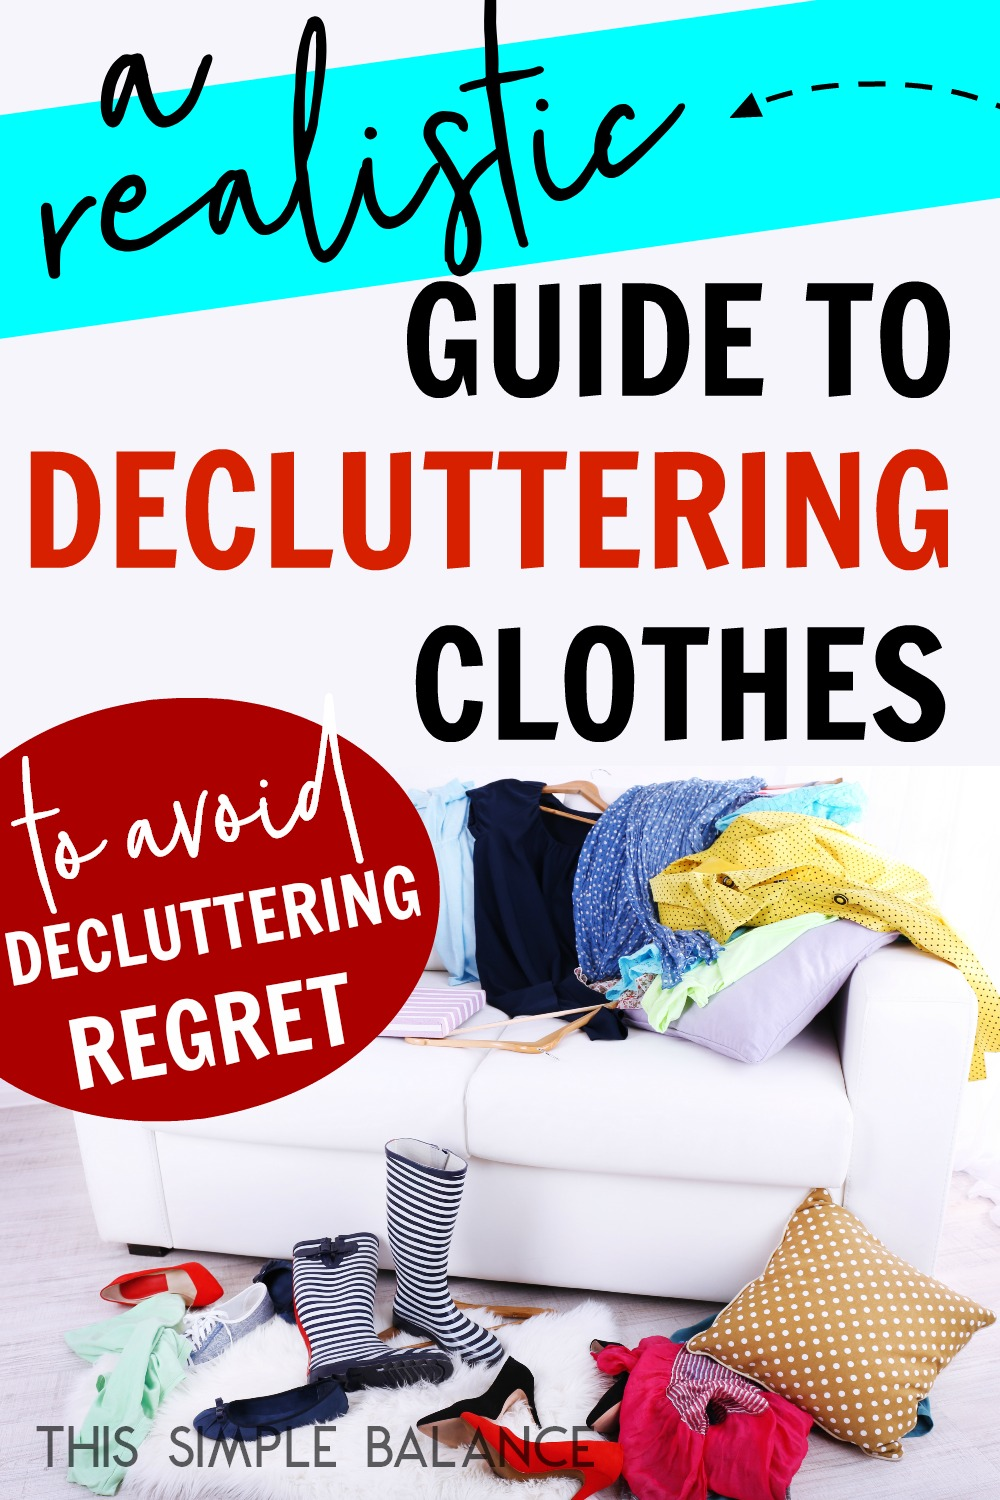 Does decluttering clothes feel too overwhelming? Afraid you'll be left with a threadbare wardrobe with nothing left to wear? This simple and realistic step-by-step guide can help! Declutter your clothes without getting rid of everything you own (unless, of course, you want to). A decluttered closet equals less stress and more time. Start today!